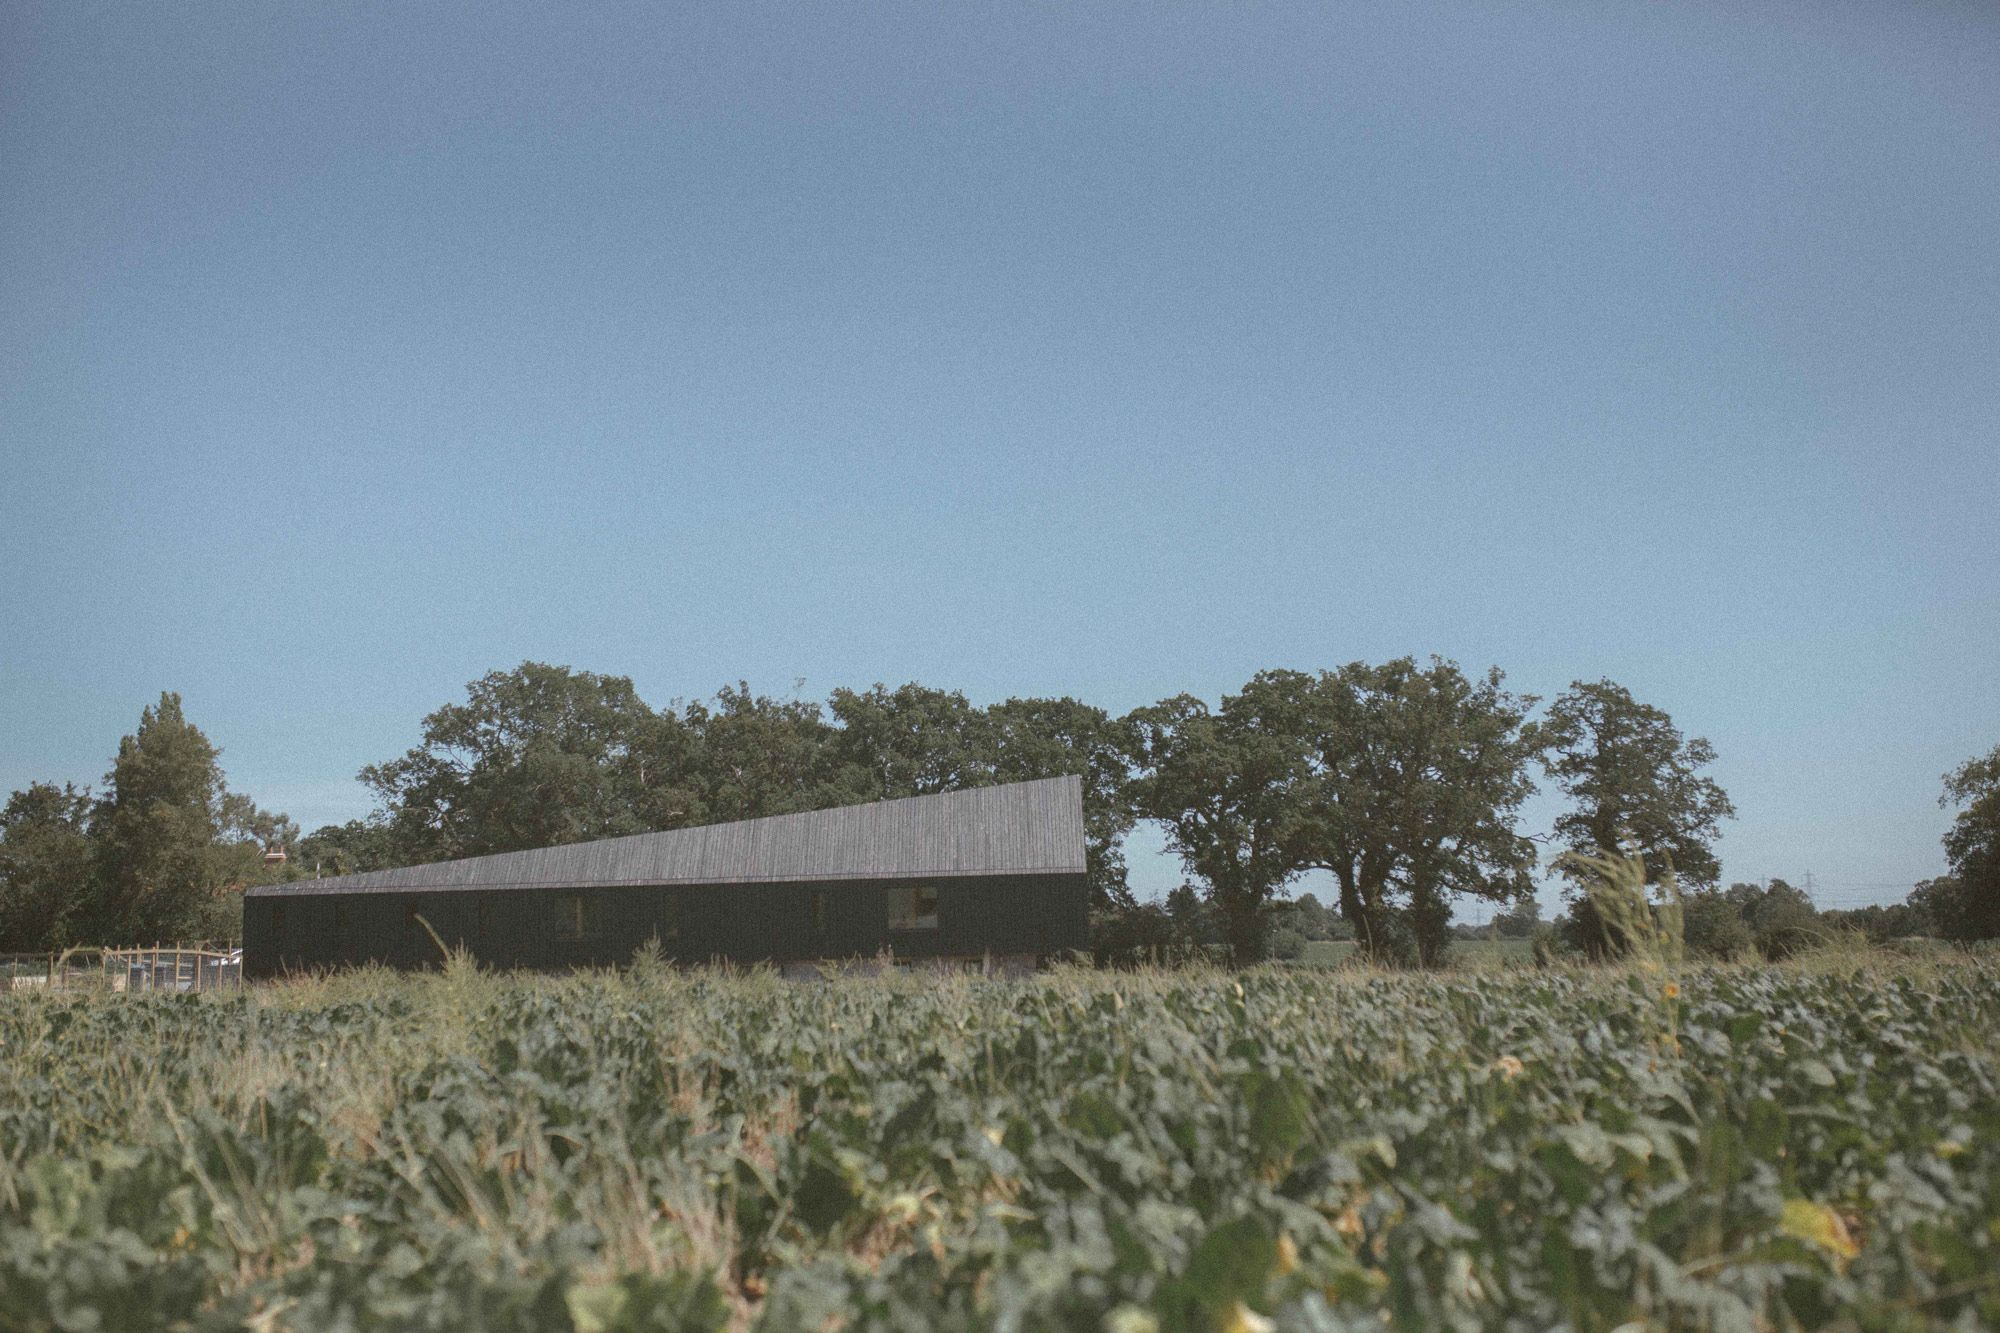 Studio_Bark_Black_Barn_Exterior-wide-4